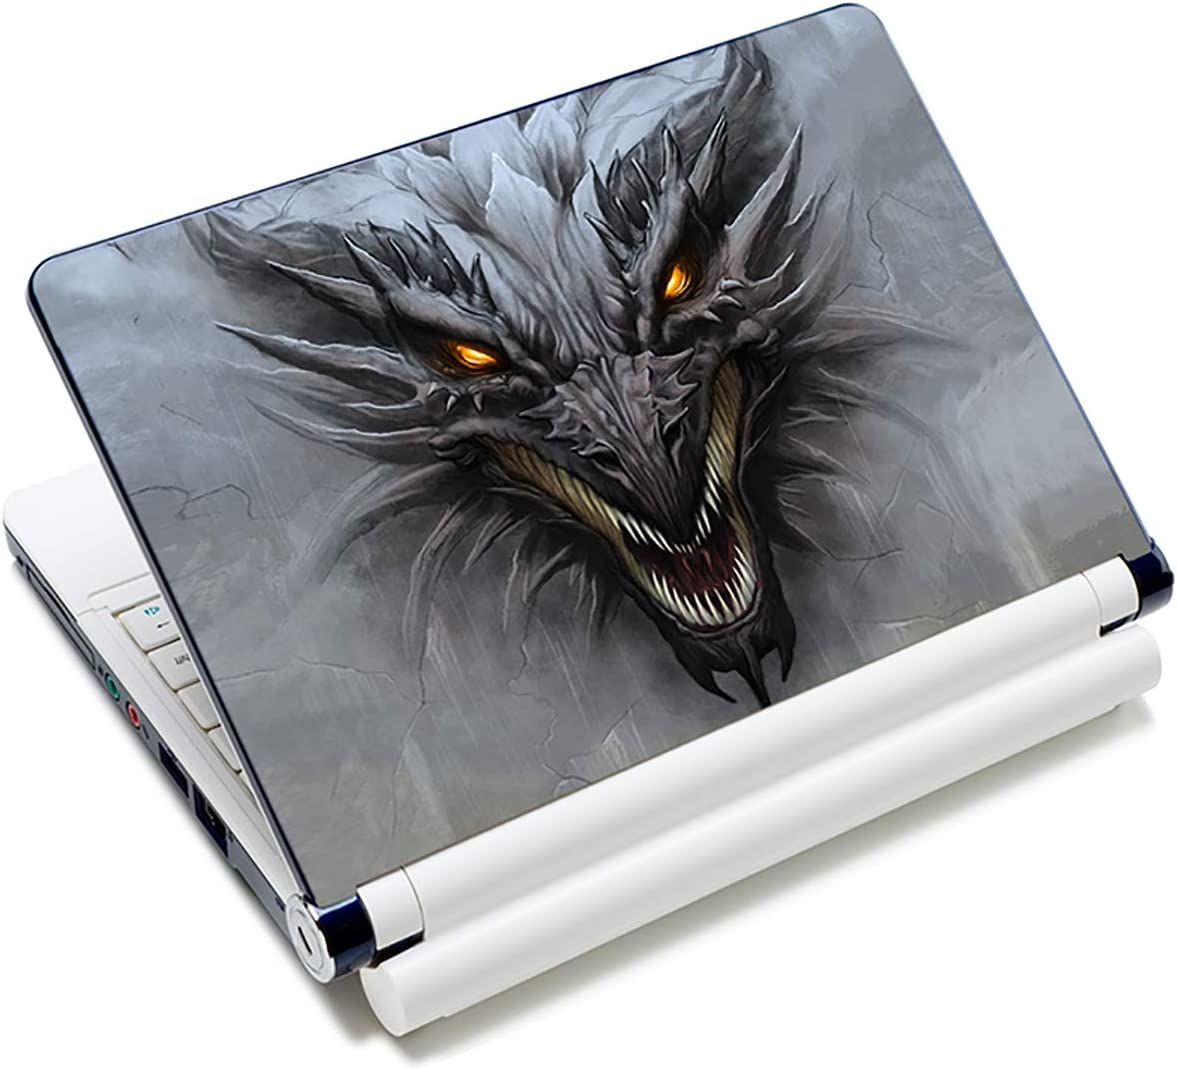 Laptop Notebook Skin Sticker Cover Decal Fits 12 13 13.3 14 15 15.4 15.6 inch Laptop Protector Notebook PC | Easy to Apply, Remove and Change Styles (Dragon)